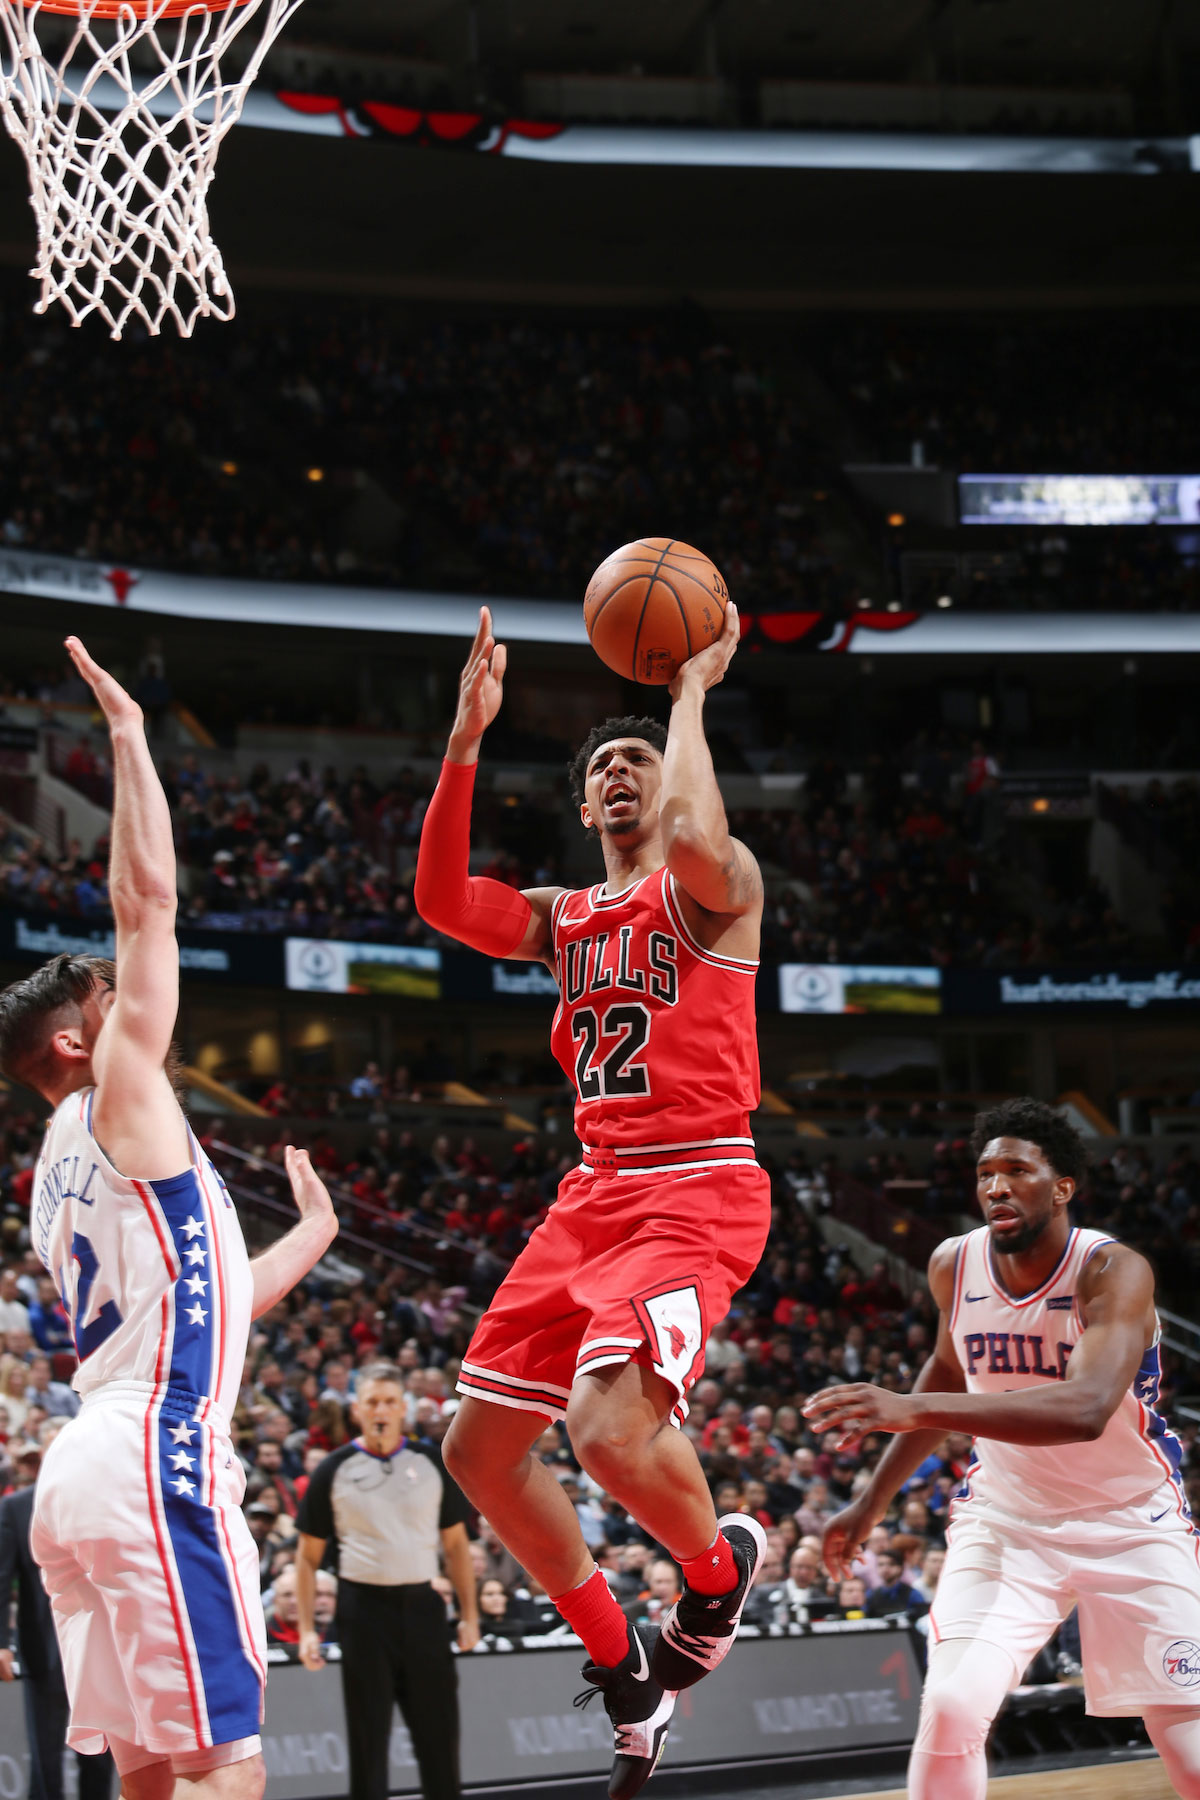 Cameron Payne #22 of the Chicago Bulls dunks against the Philadelphia 76ers on February 22, 2018 at the United Center in Chicago, Illinois.